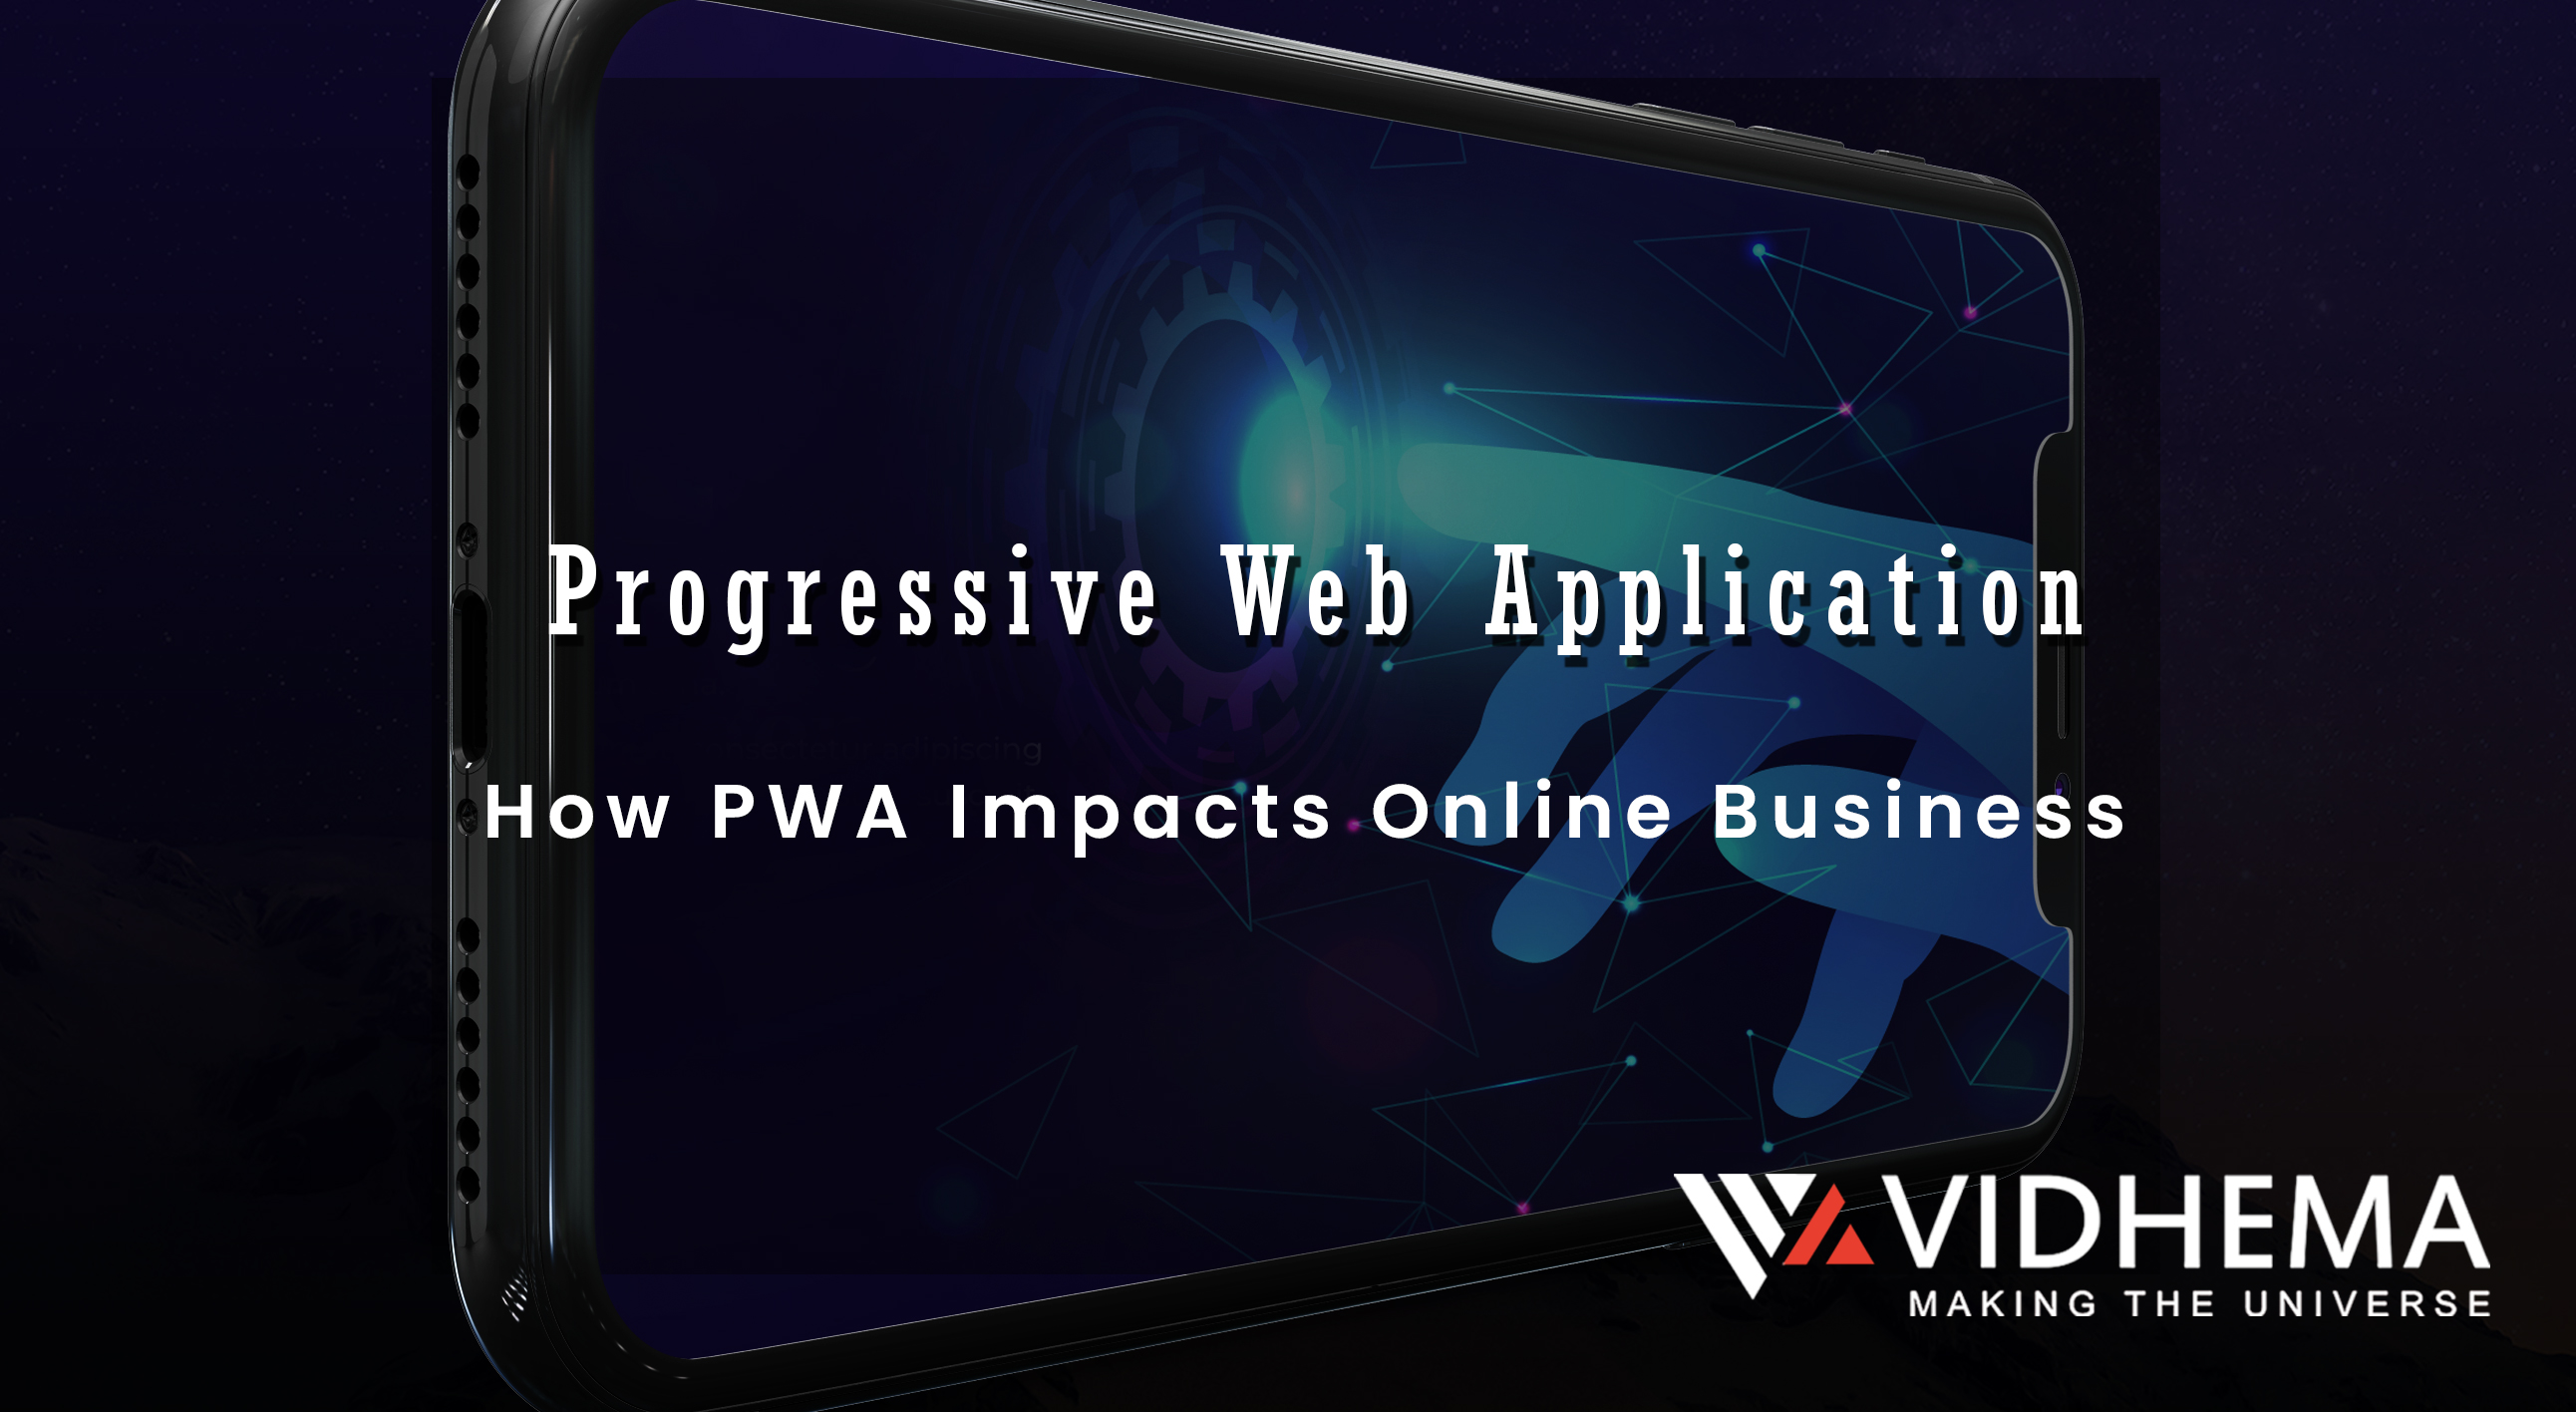 Progressive Web Application – How PWA Impacts Online Business & RoI